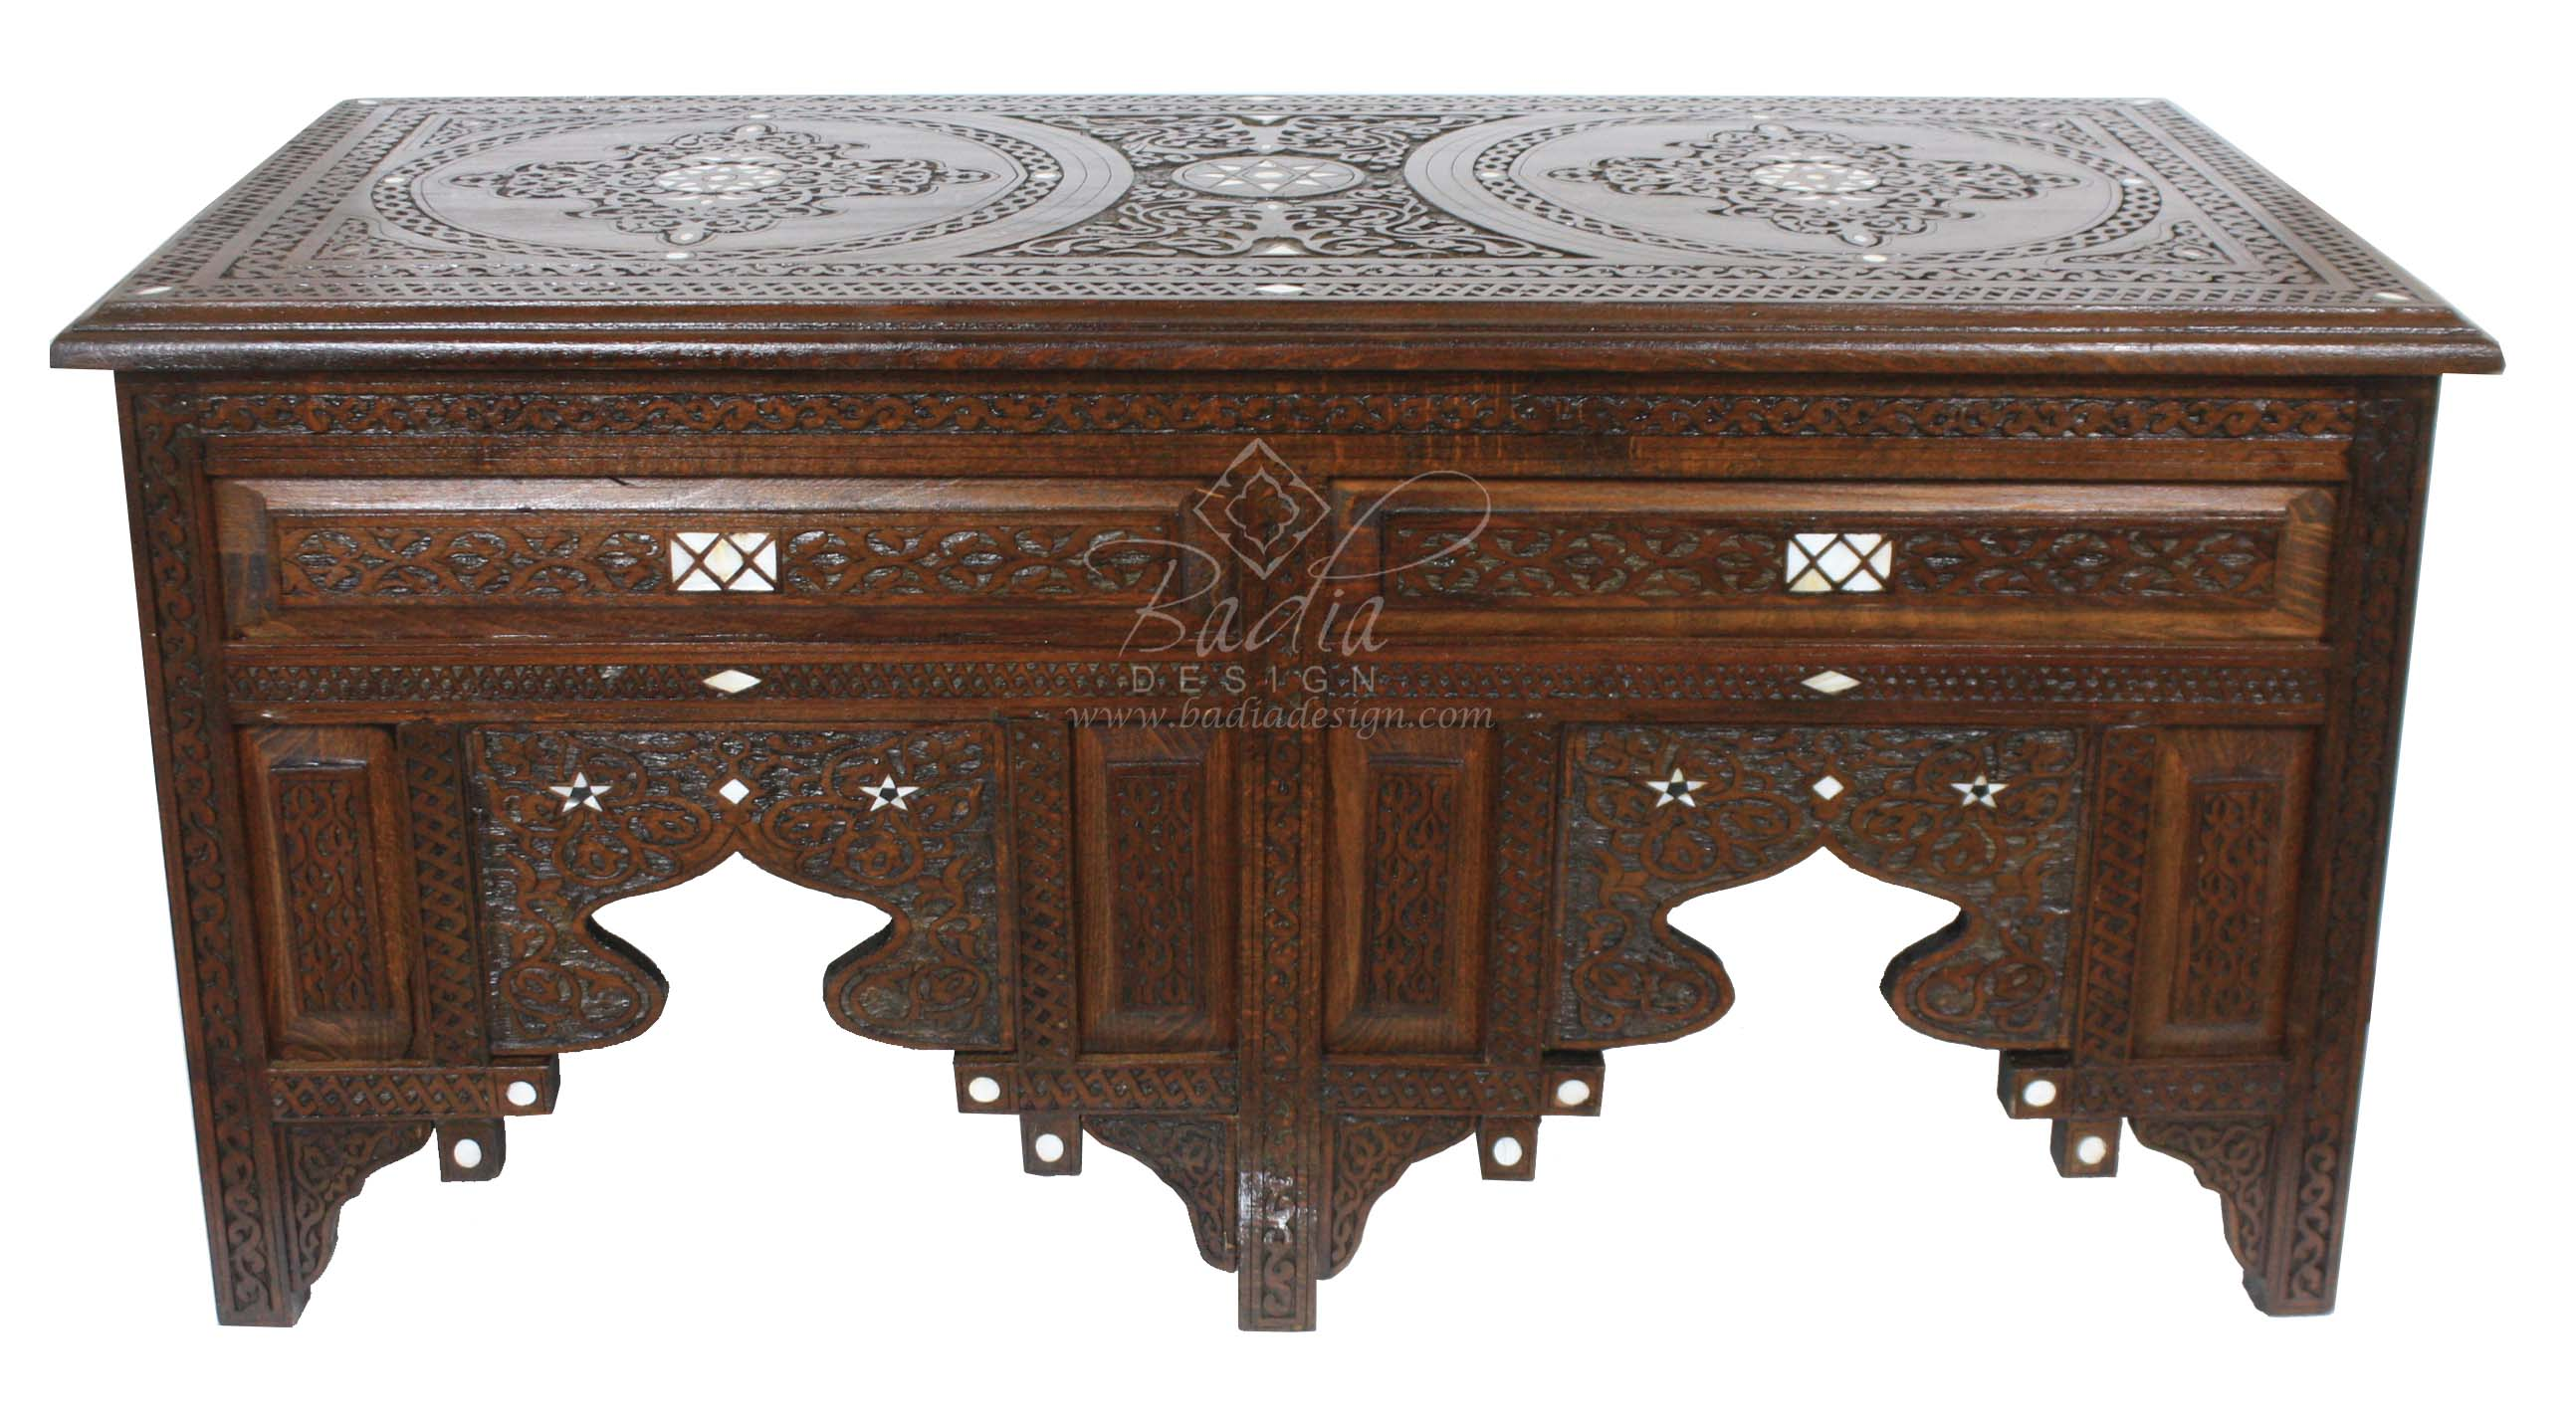 moroccan-mother-of-pearl-coffee-table-mop-st095-1.jpg